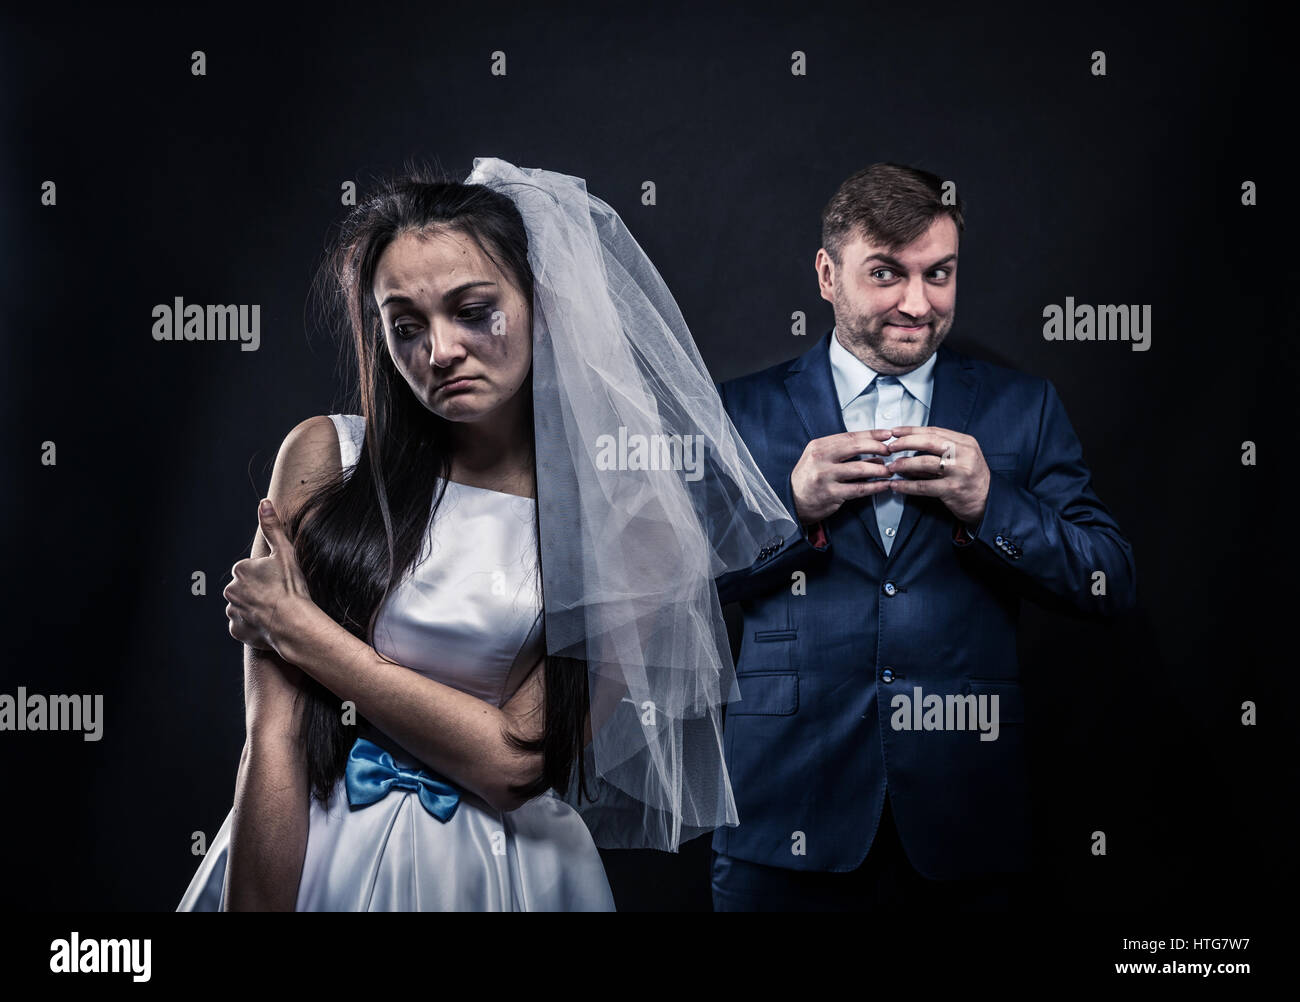 Bride with tearful face, groom with sly smile on background. Unhappy marriage - Stock Image